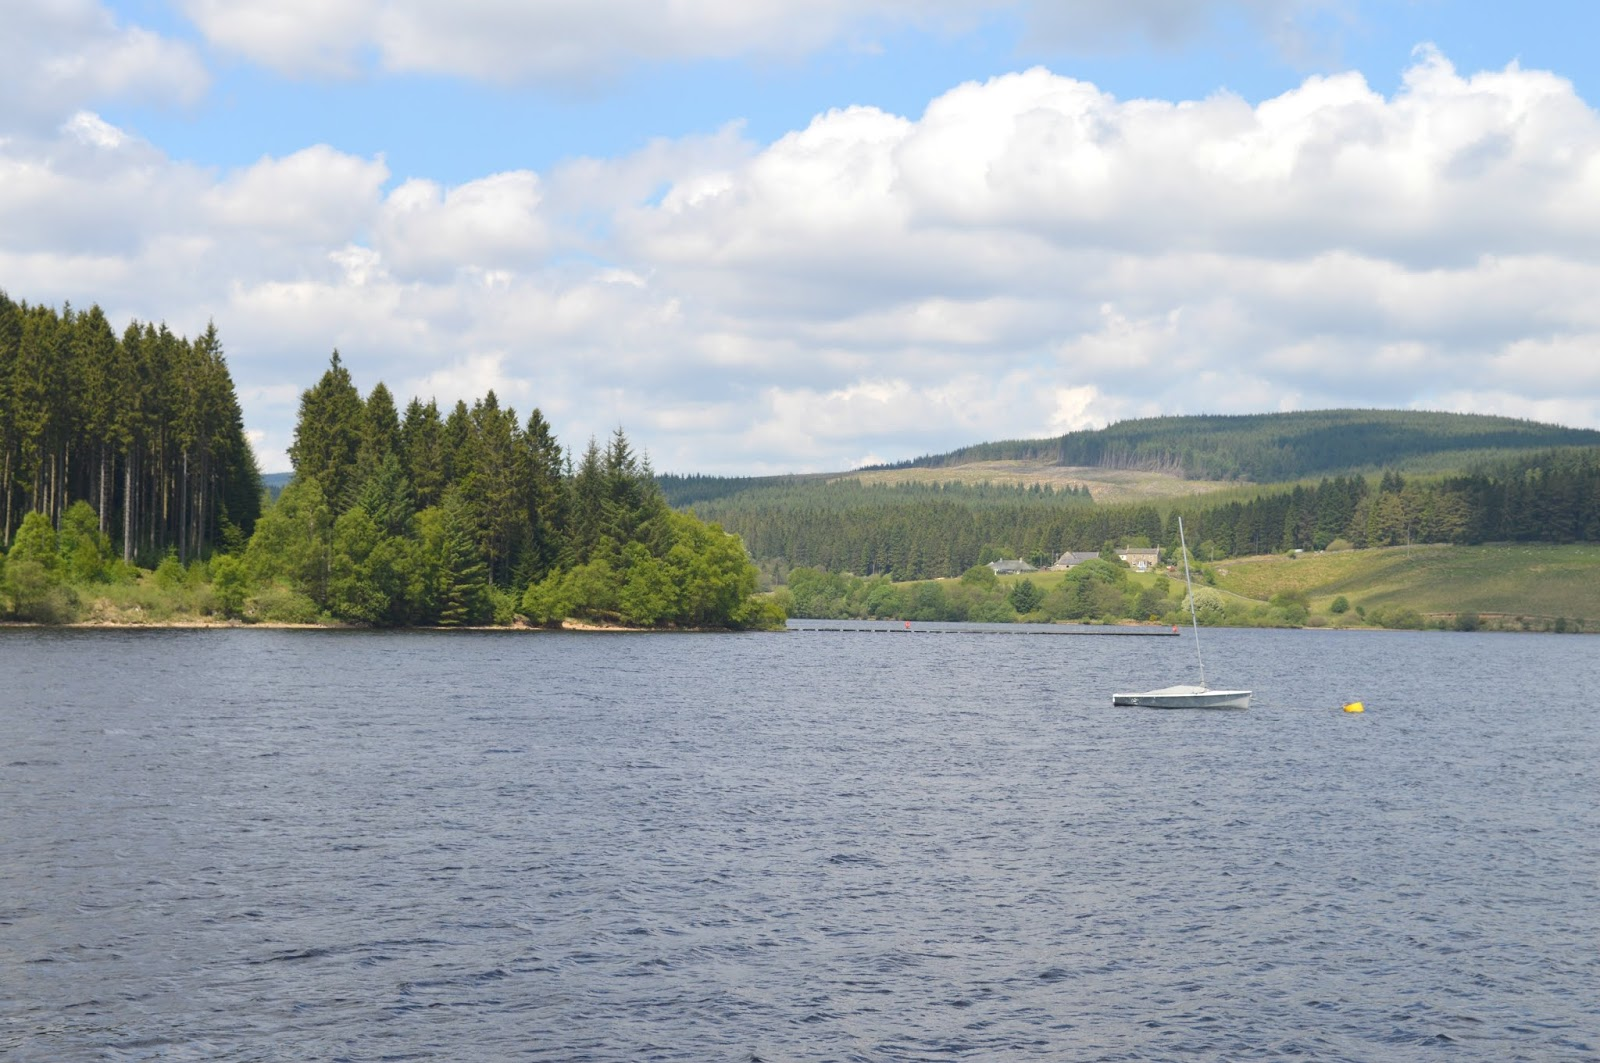 First Time Visitor's Guide to Kielder Water and Forest Park